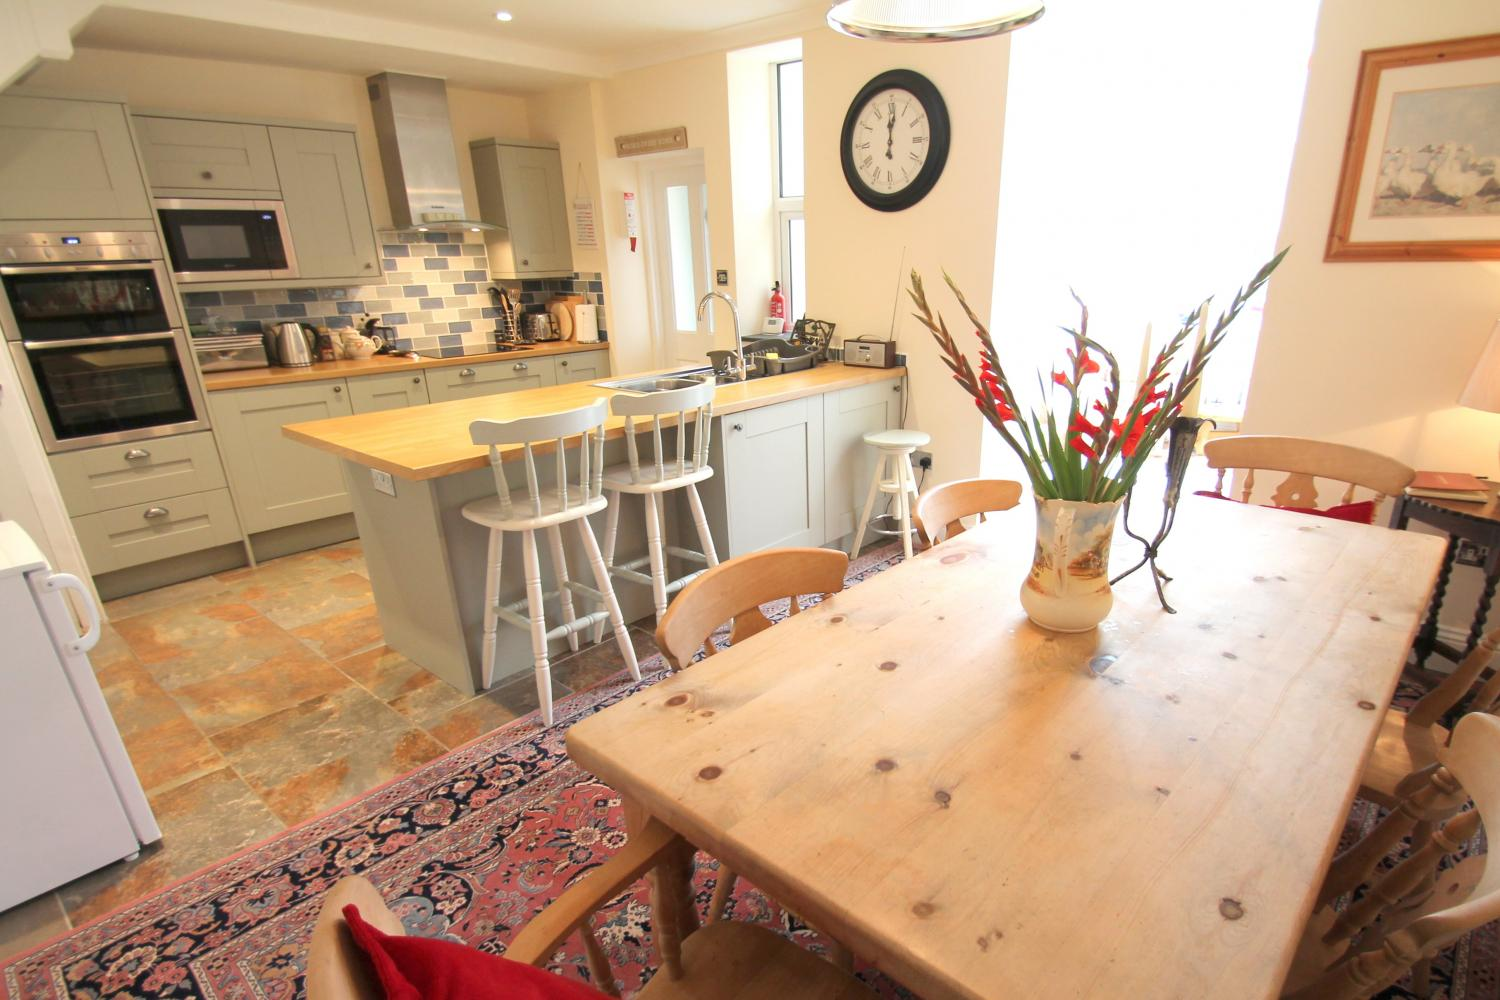 Pip's Corner kitchen and dining area